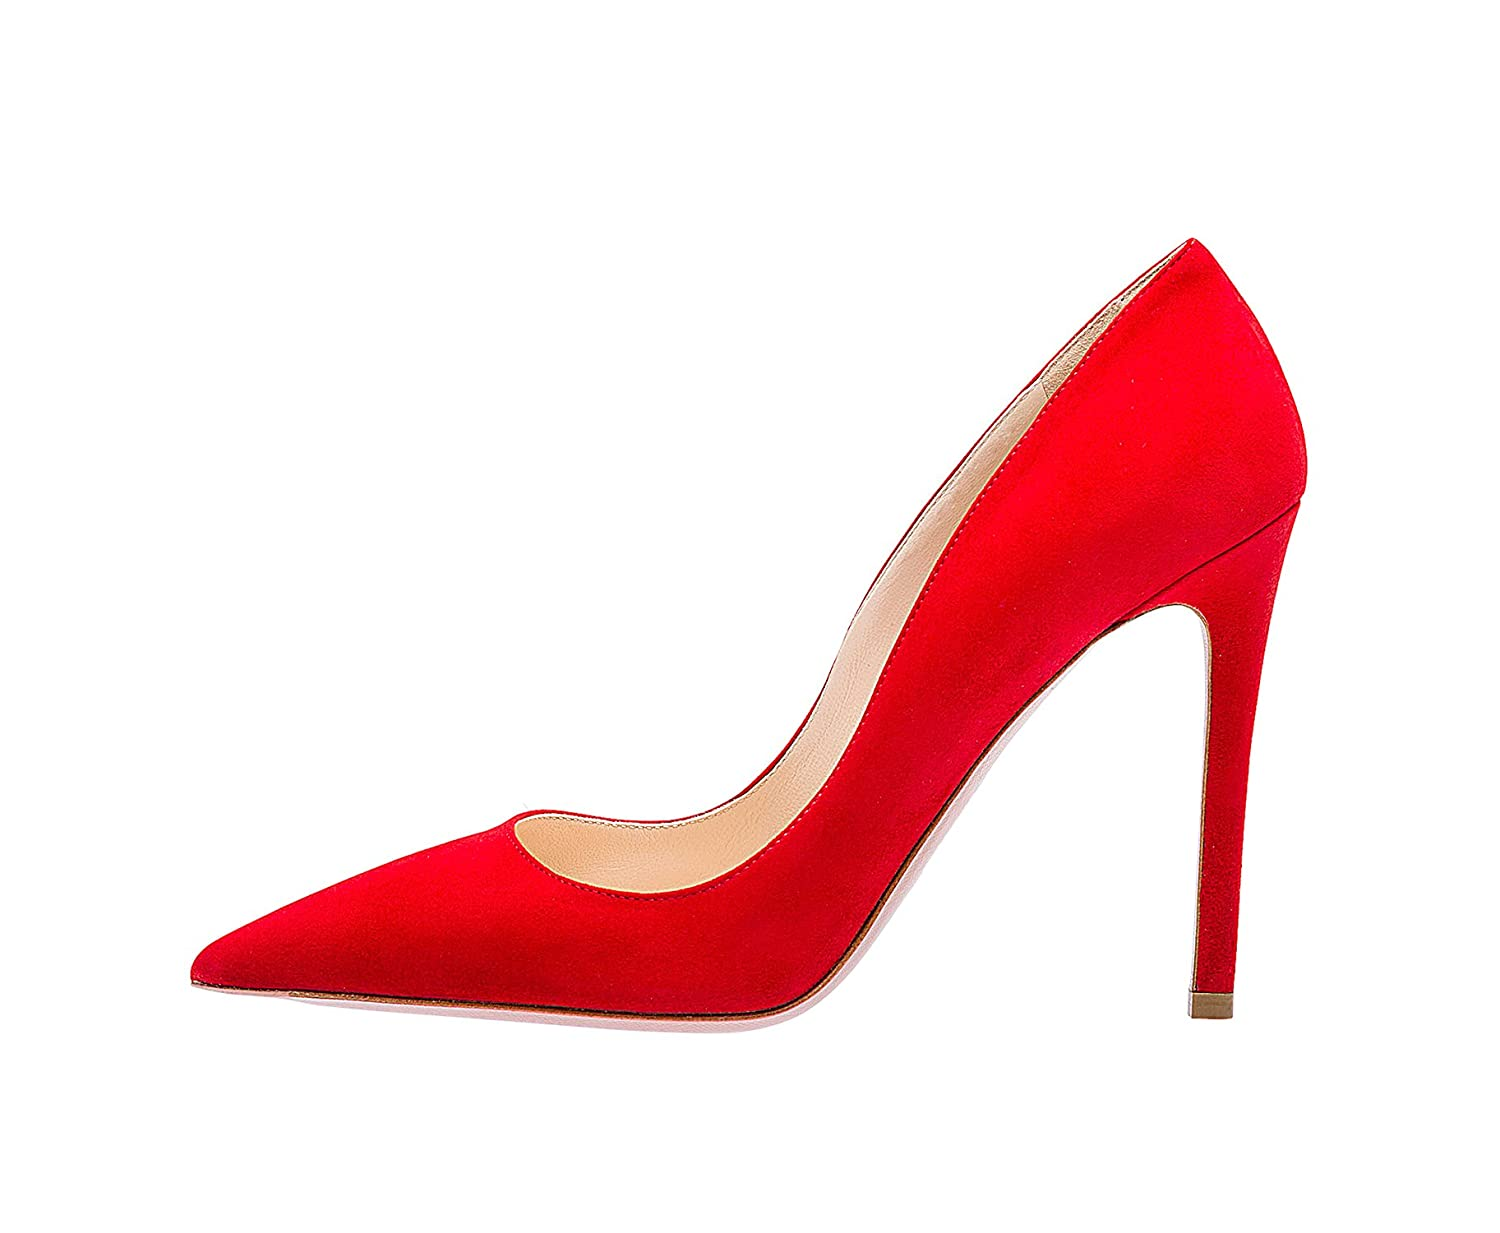 SexyPrey Women's Pointy Toe Stiletto Shoes Formal Office Evening Pumps B074M49SK2 11.5 B(M) US|Red Suede